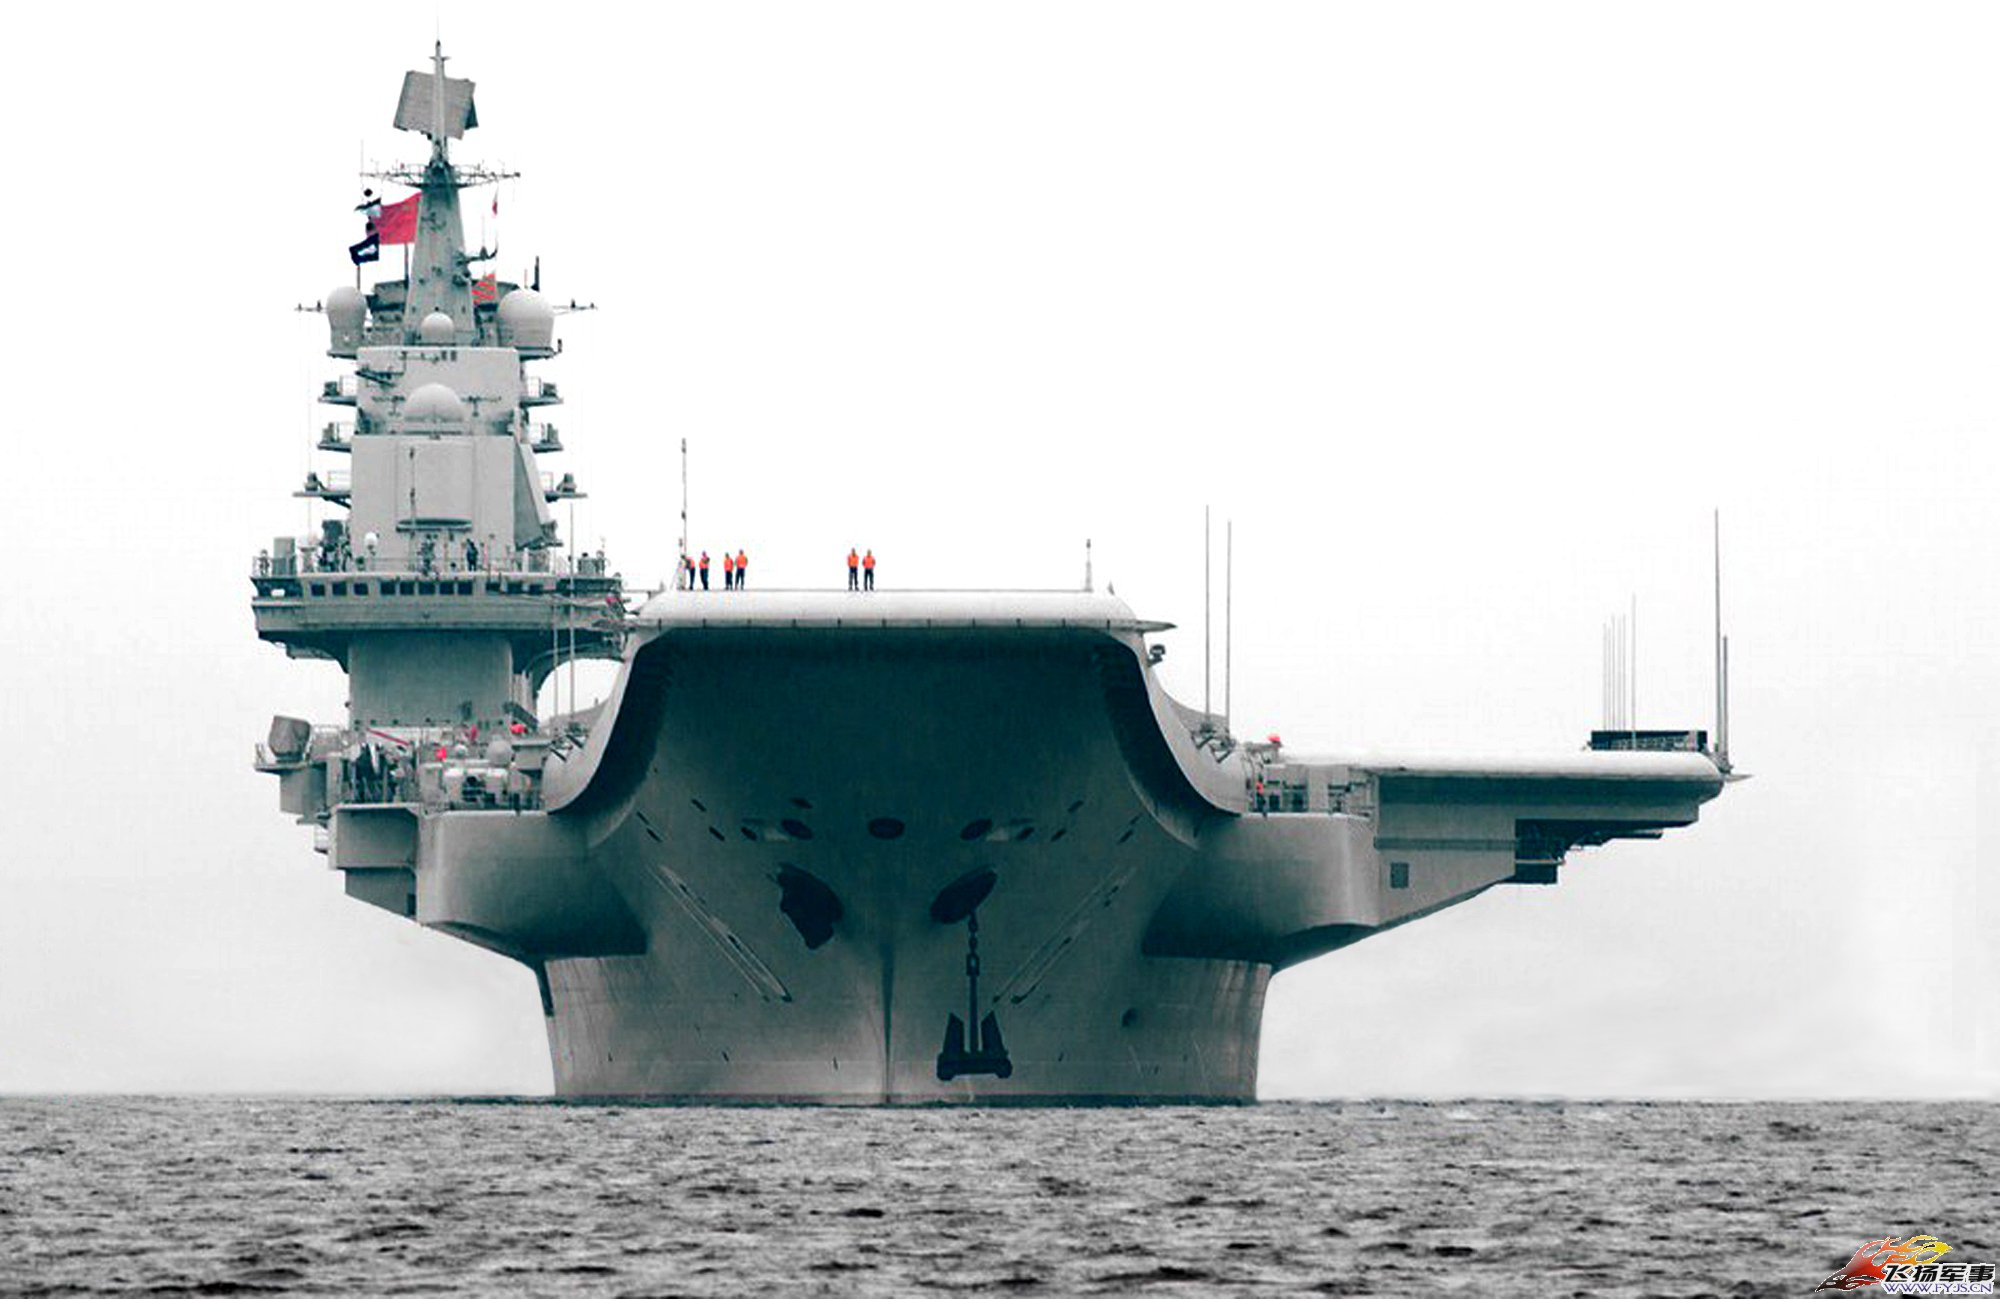 China Says Liaoning Aircraft Carrier Now Ready to 'Fight against Enemies'